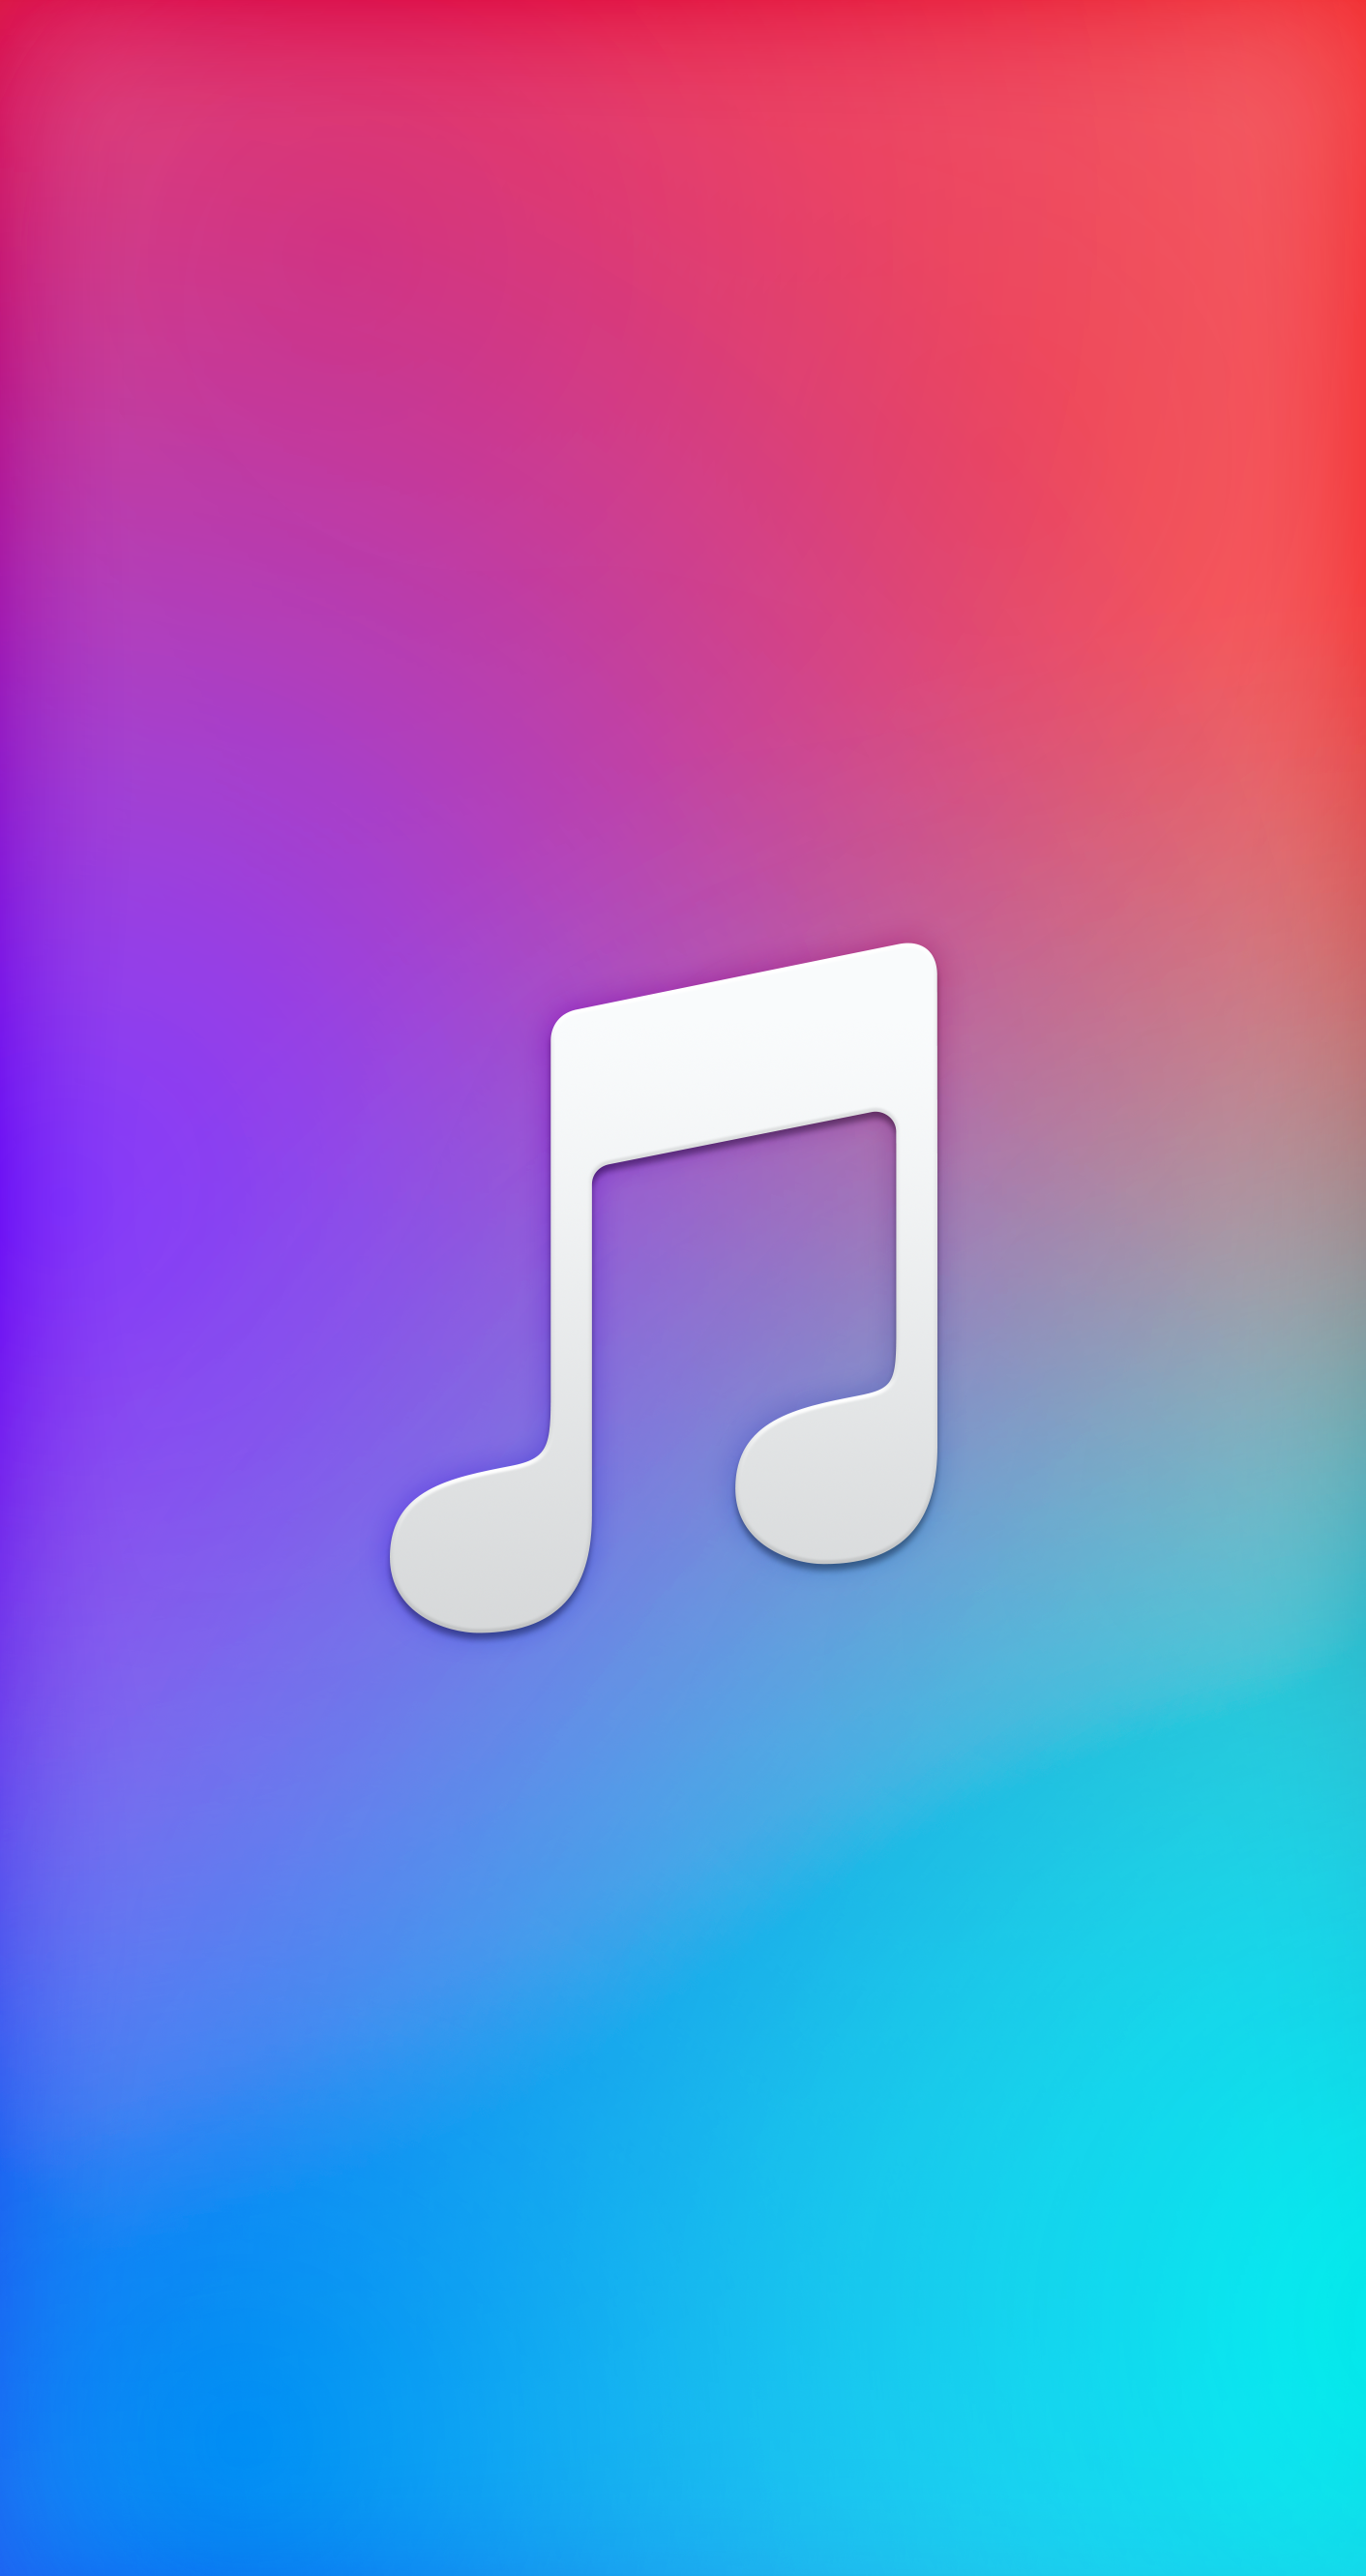 I Love Music Wallpaper For Iphone : Apple Music Wallpaper for iPhone X, 8, 7, 6 - Free Download on 3Wallpapers